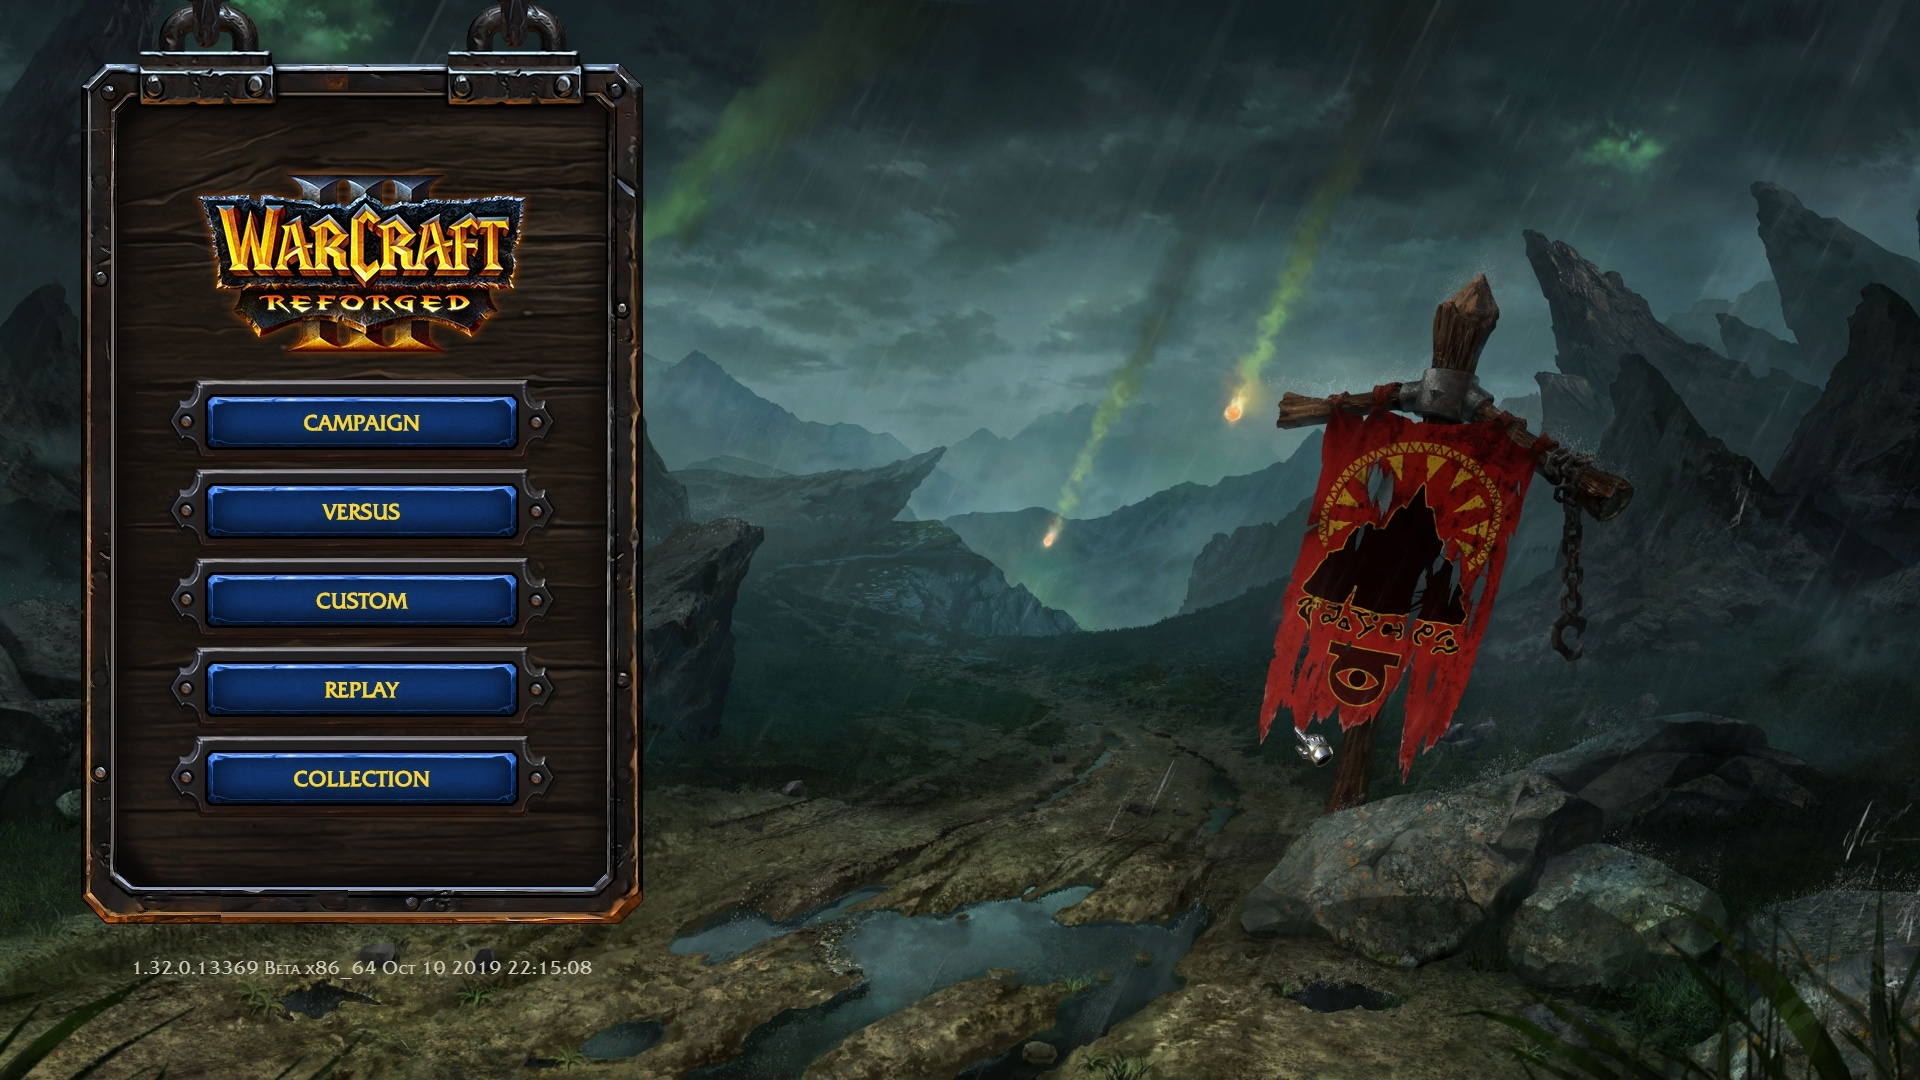 Warcraft 3 reforged news